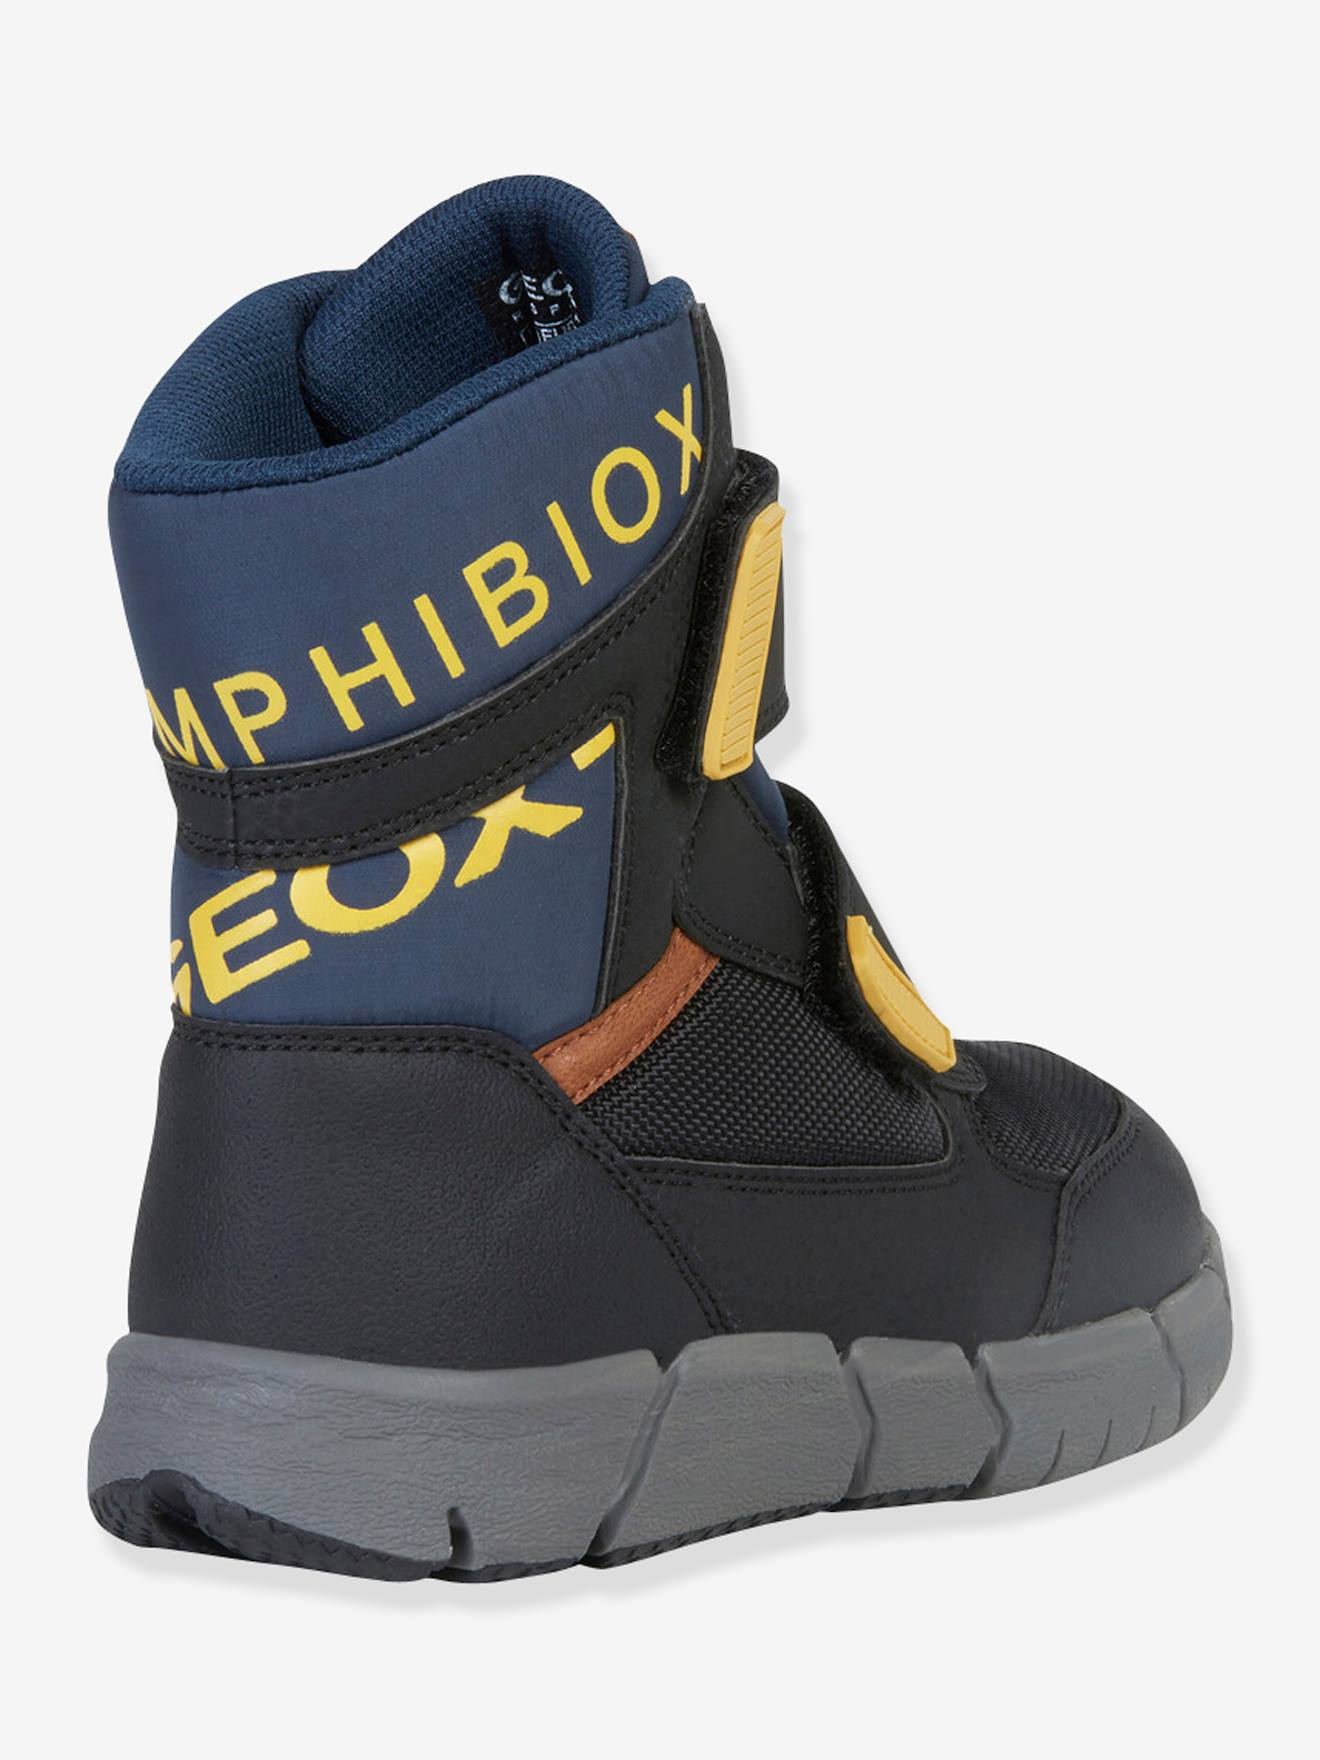 J Flexyper Boy B Abx Boots for Boys, by GEOX® black dark solid with design, Shoes